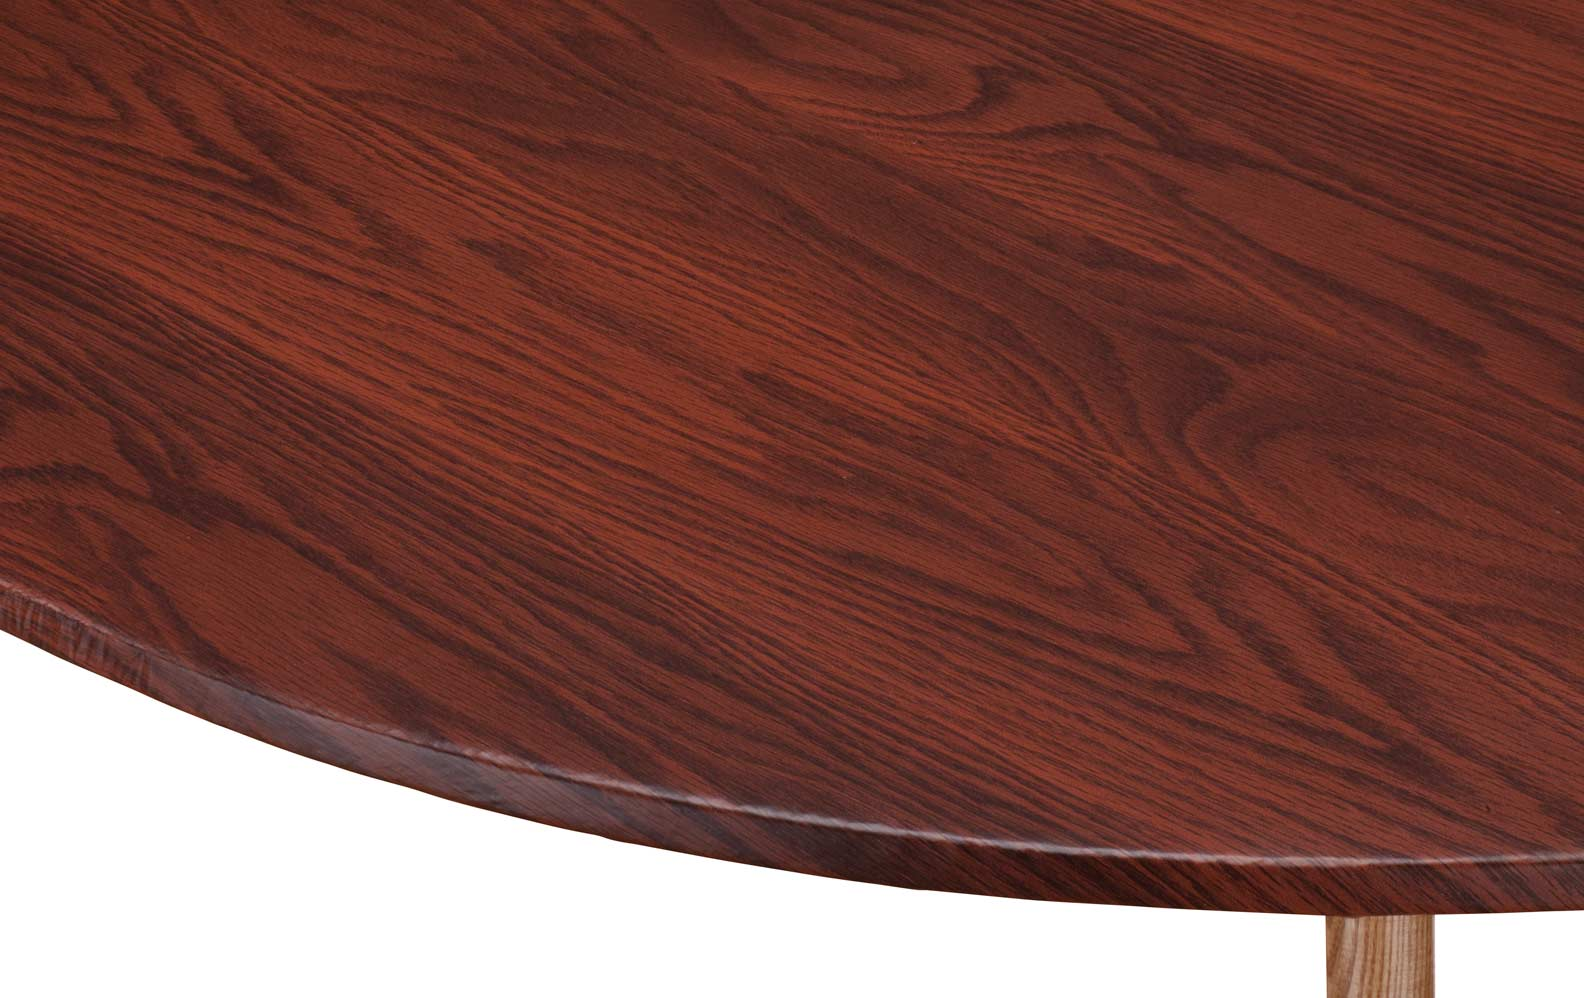 Very Impressive portraiture of Wood Grain Vinyl Elasticized Table Cover Mahogany 40 44 Dia Round  with #673026 color and 1584x998 pixels